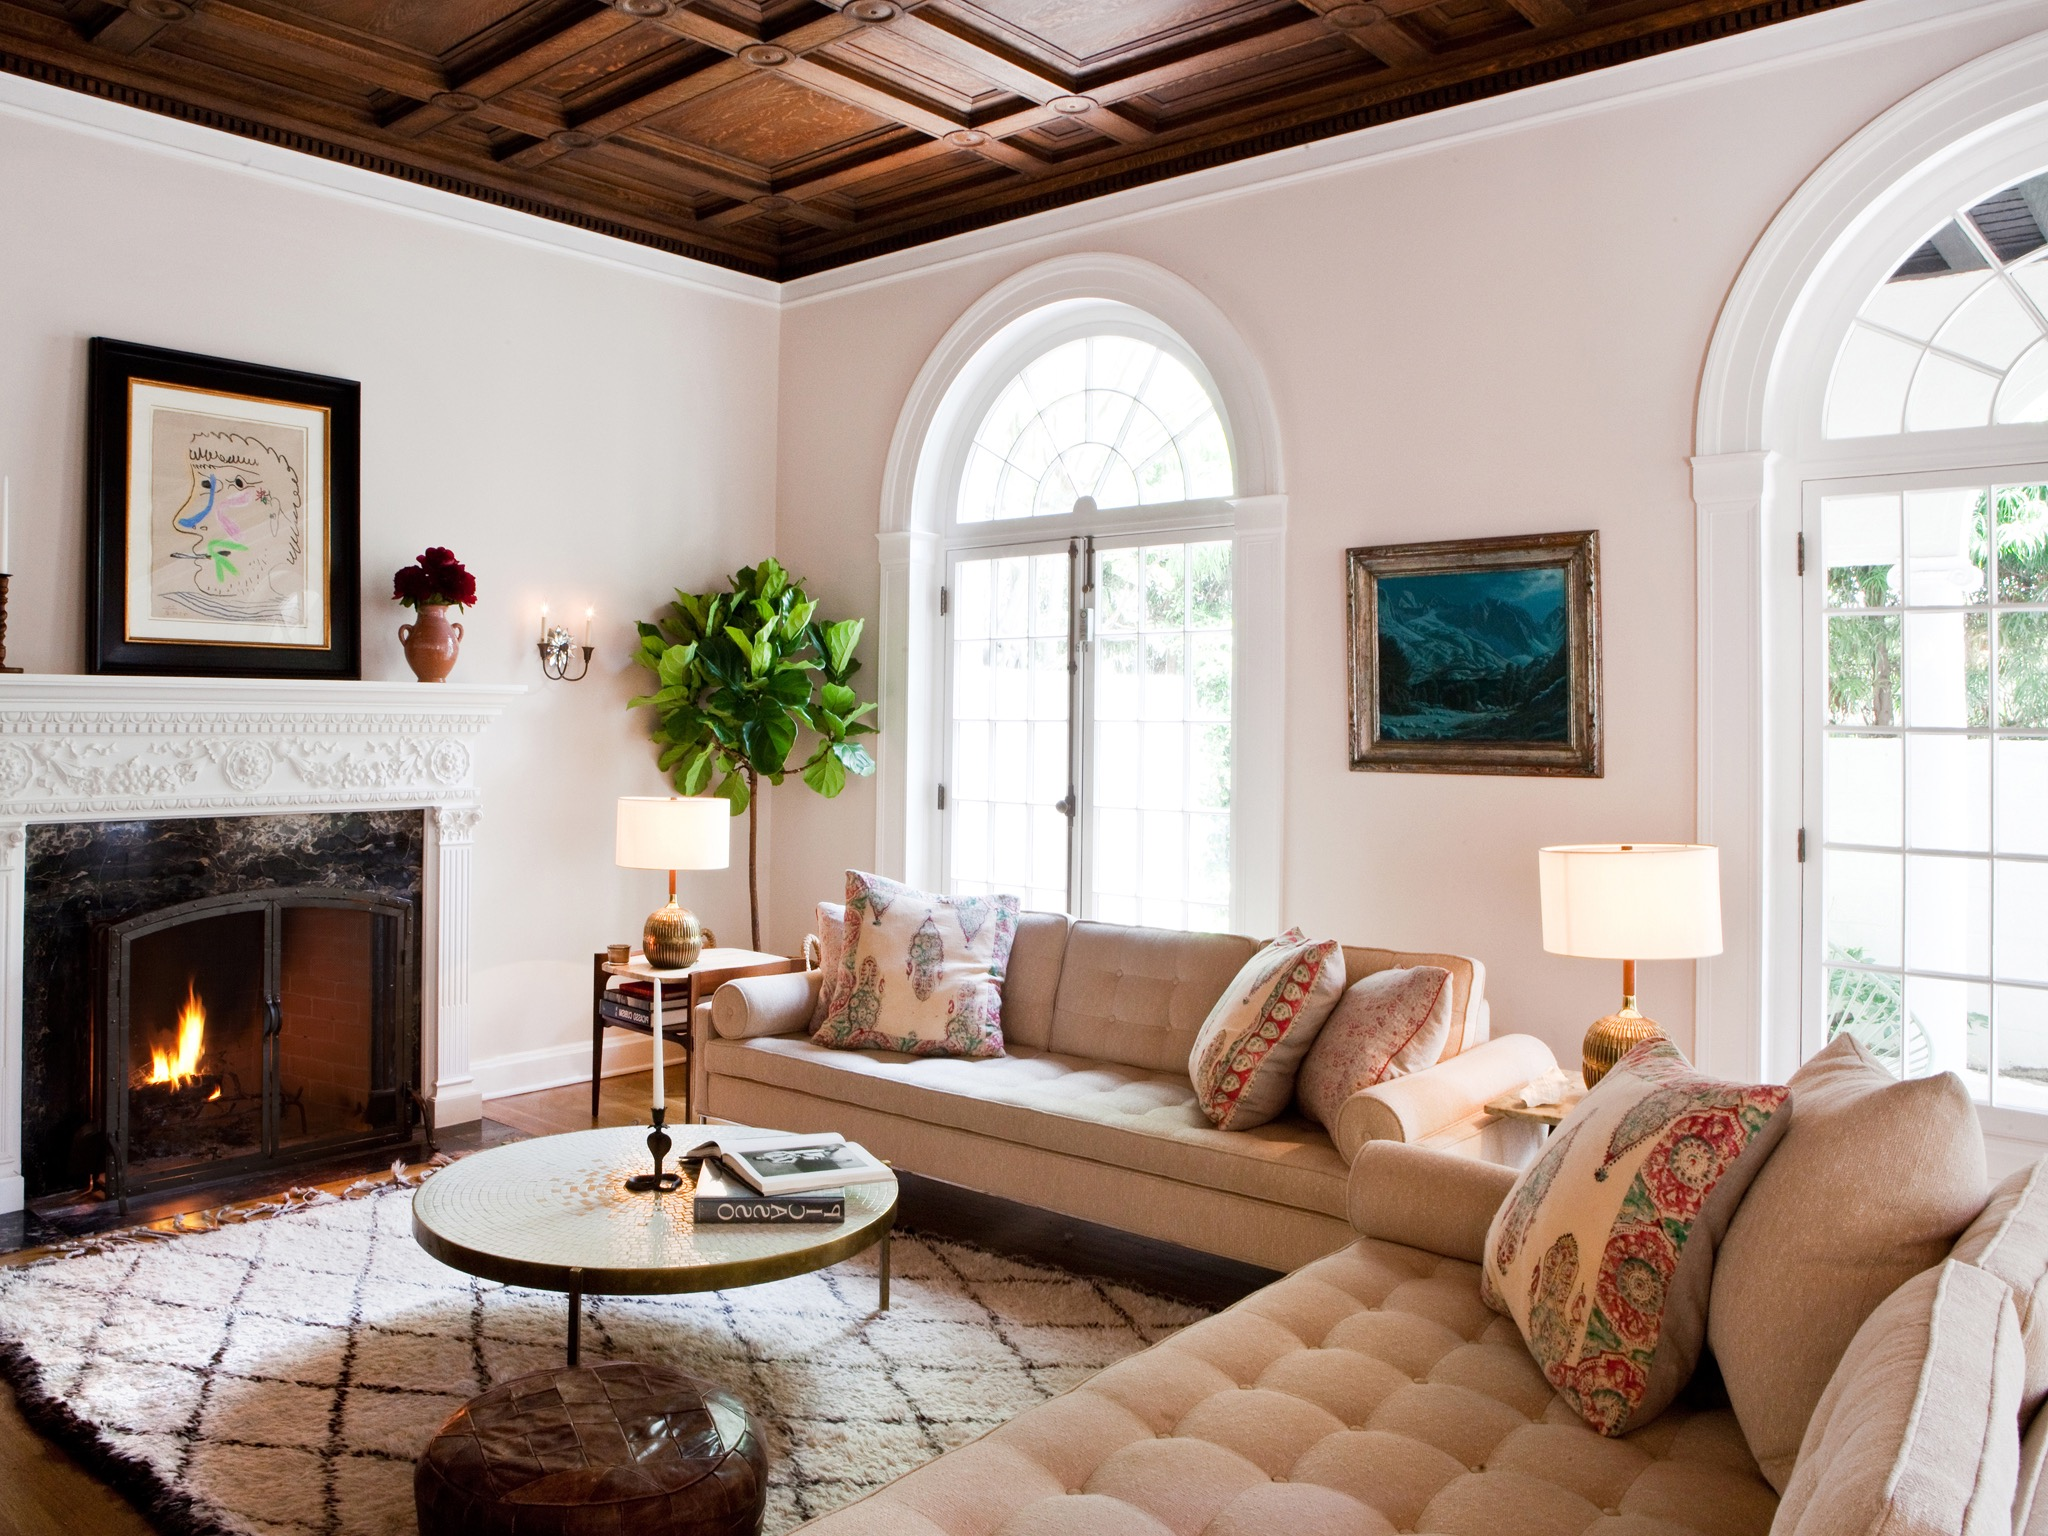 Mediterranean Living Room With Warm White Details (Image 11 of 25)